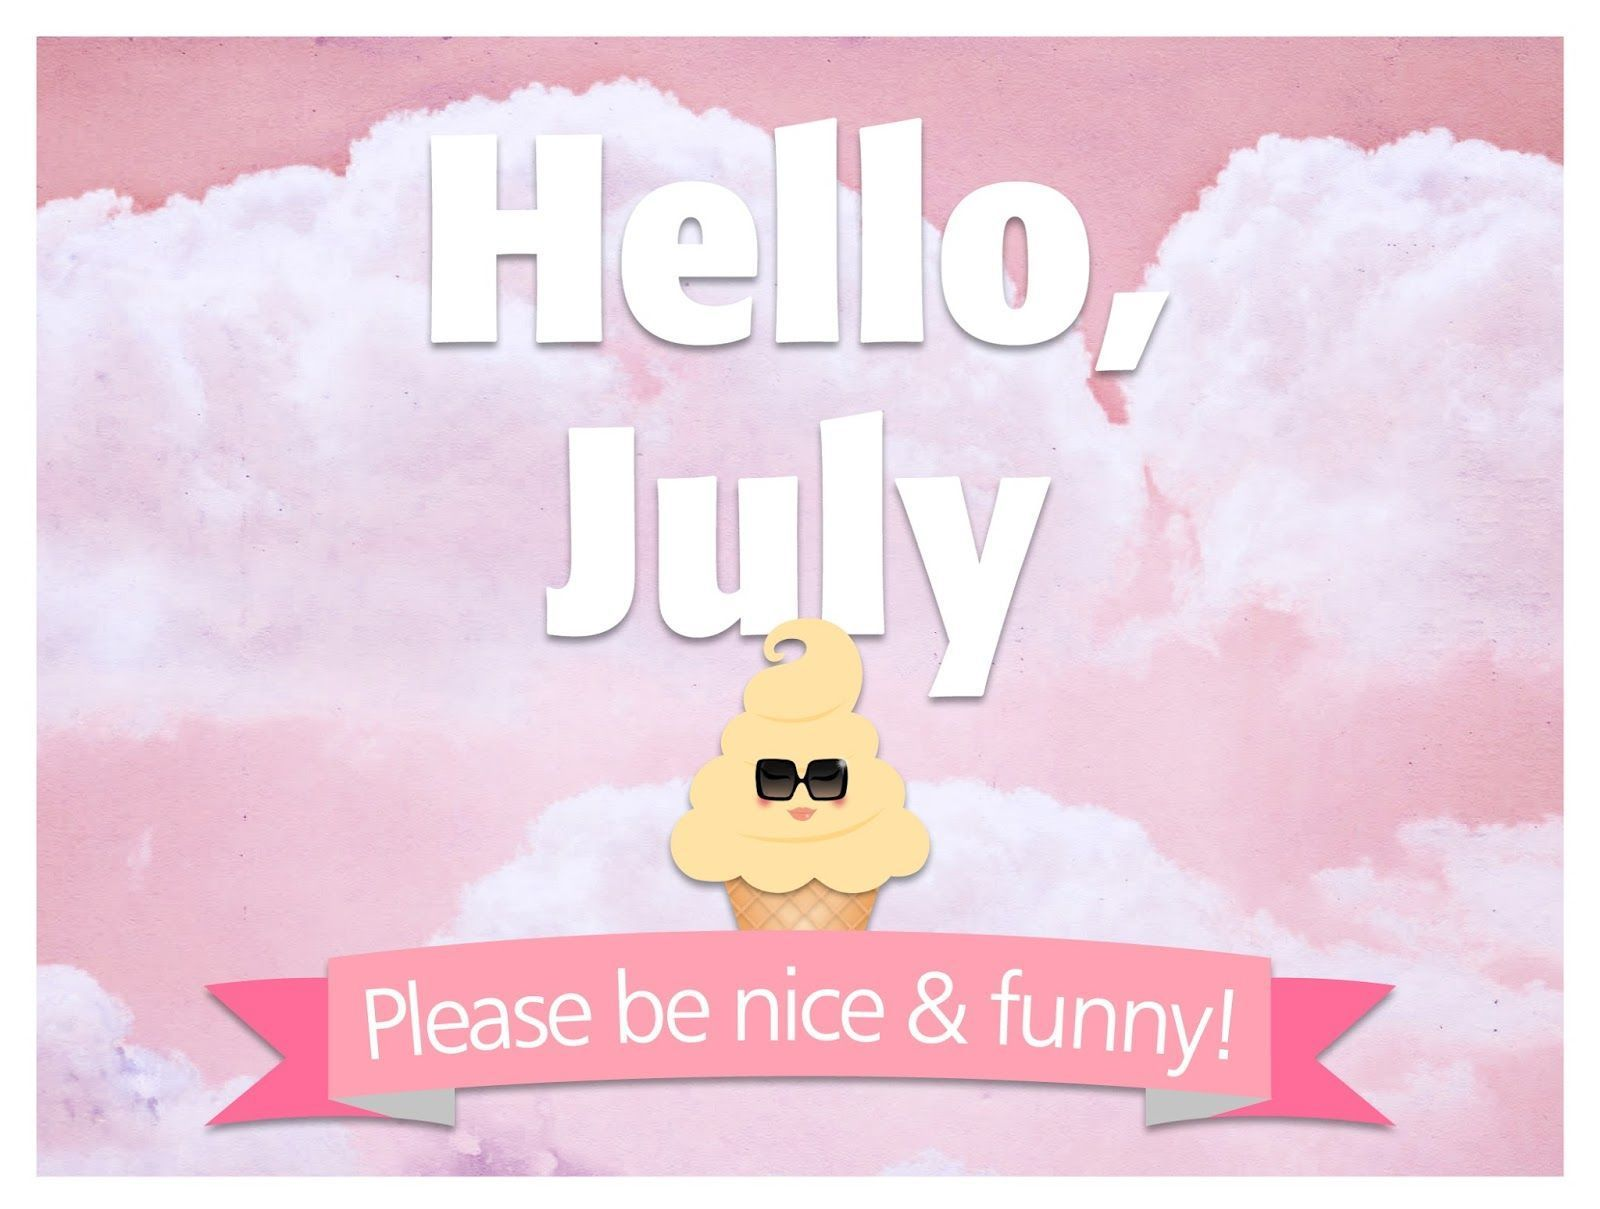 Hello July Month Please Be Good Images, Pictures, Photos, Wallpaper